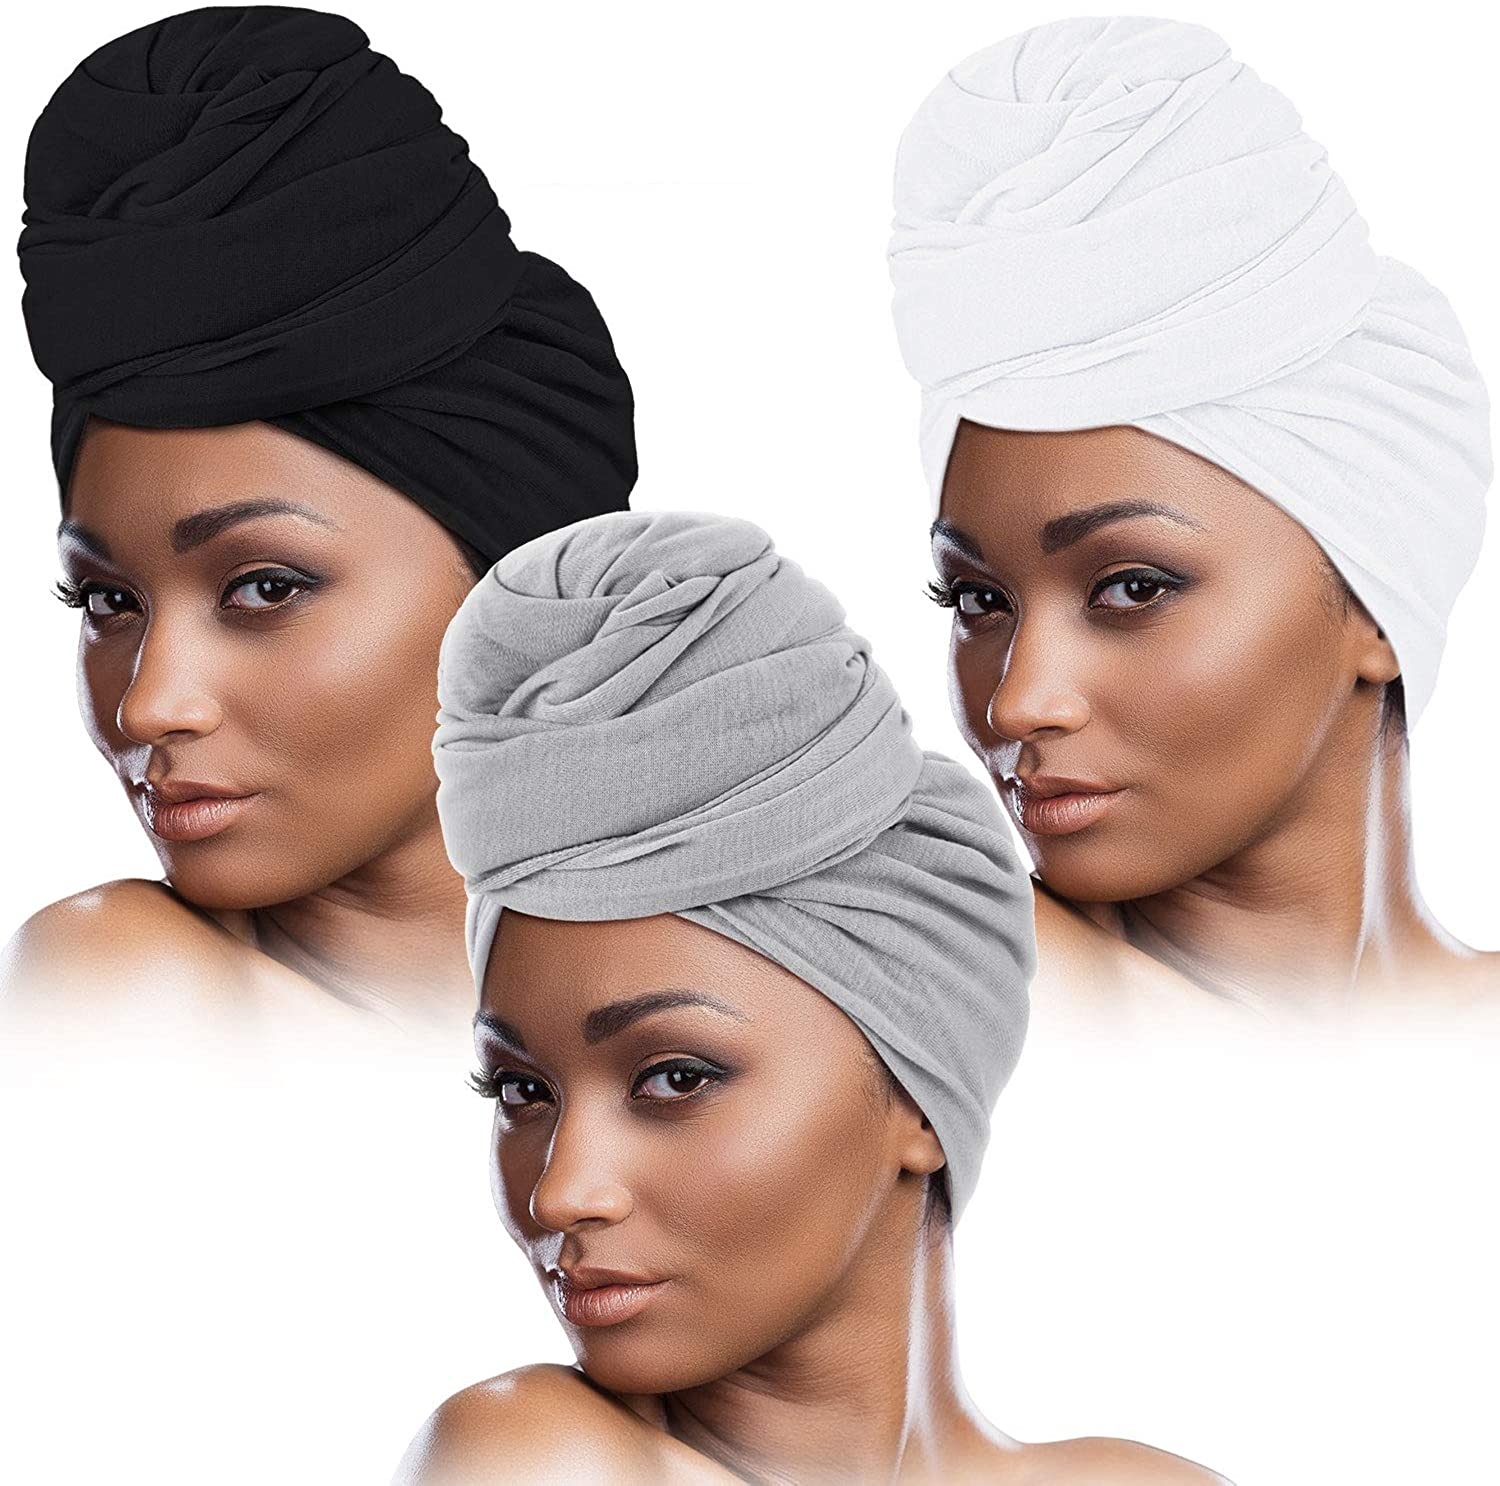 3 Pieces Women Stretch Head Wrap Scarf Stretchy Turban Long Hair Scarf Wrap Solid Color Soft Head Band Tie (Black, Gray, White)